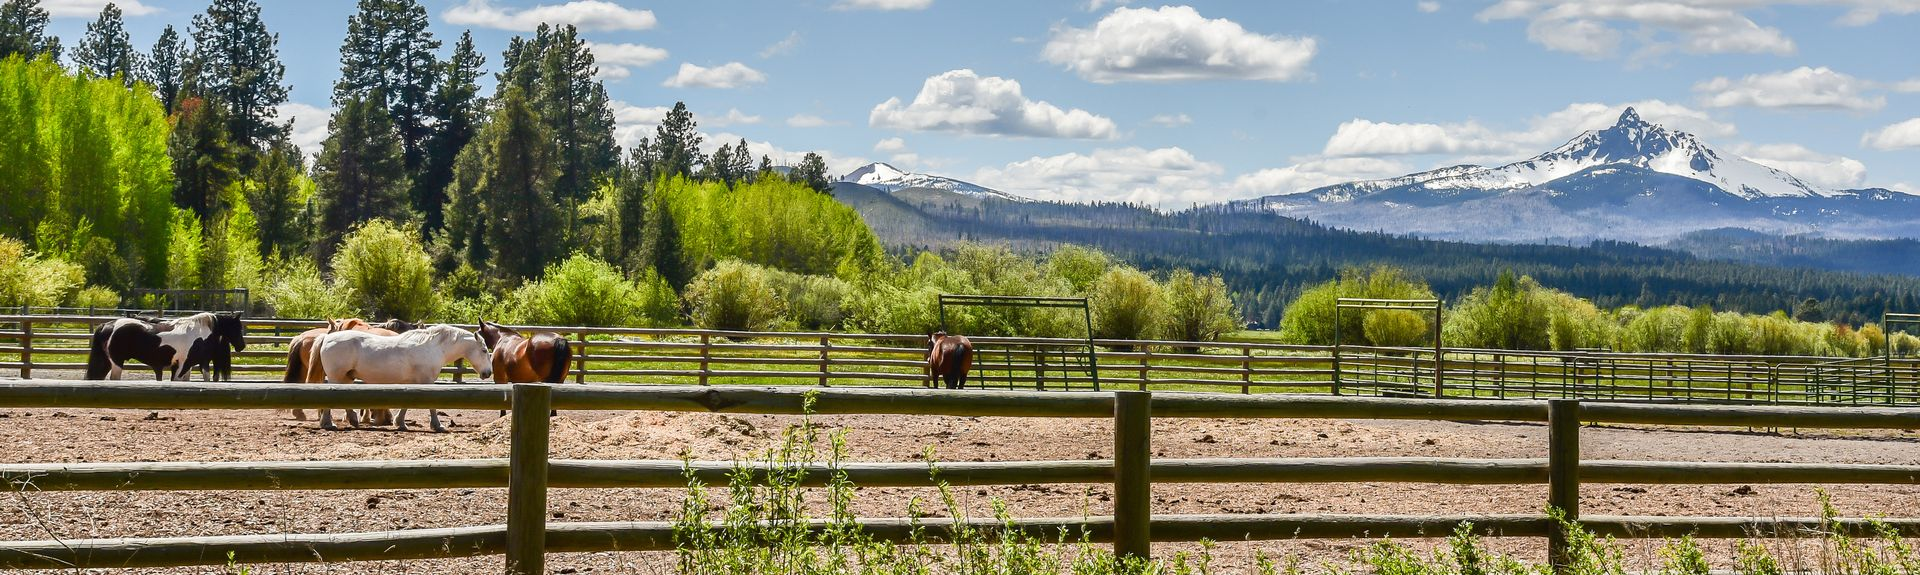 Black Butte Ranch, Sisters, Oregon, United States of America